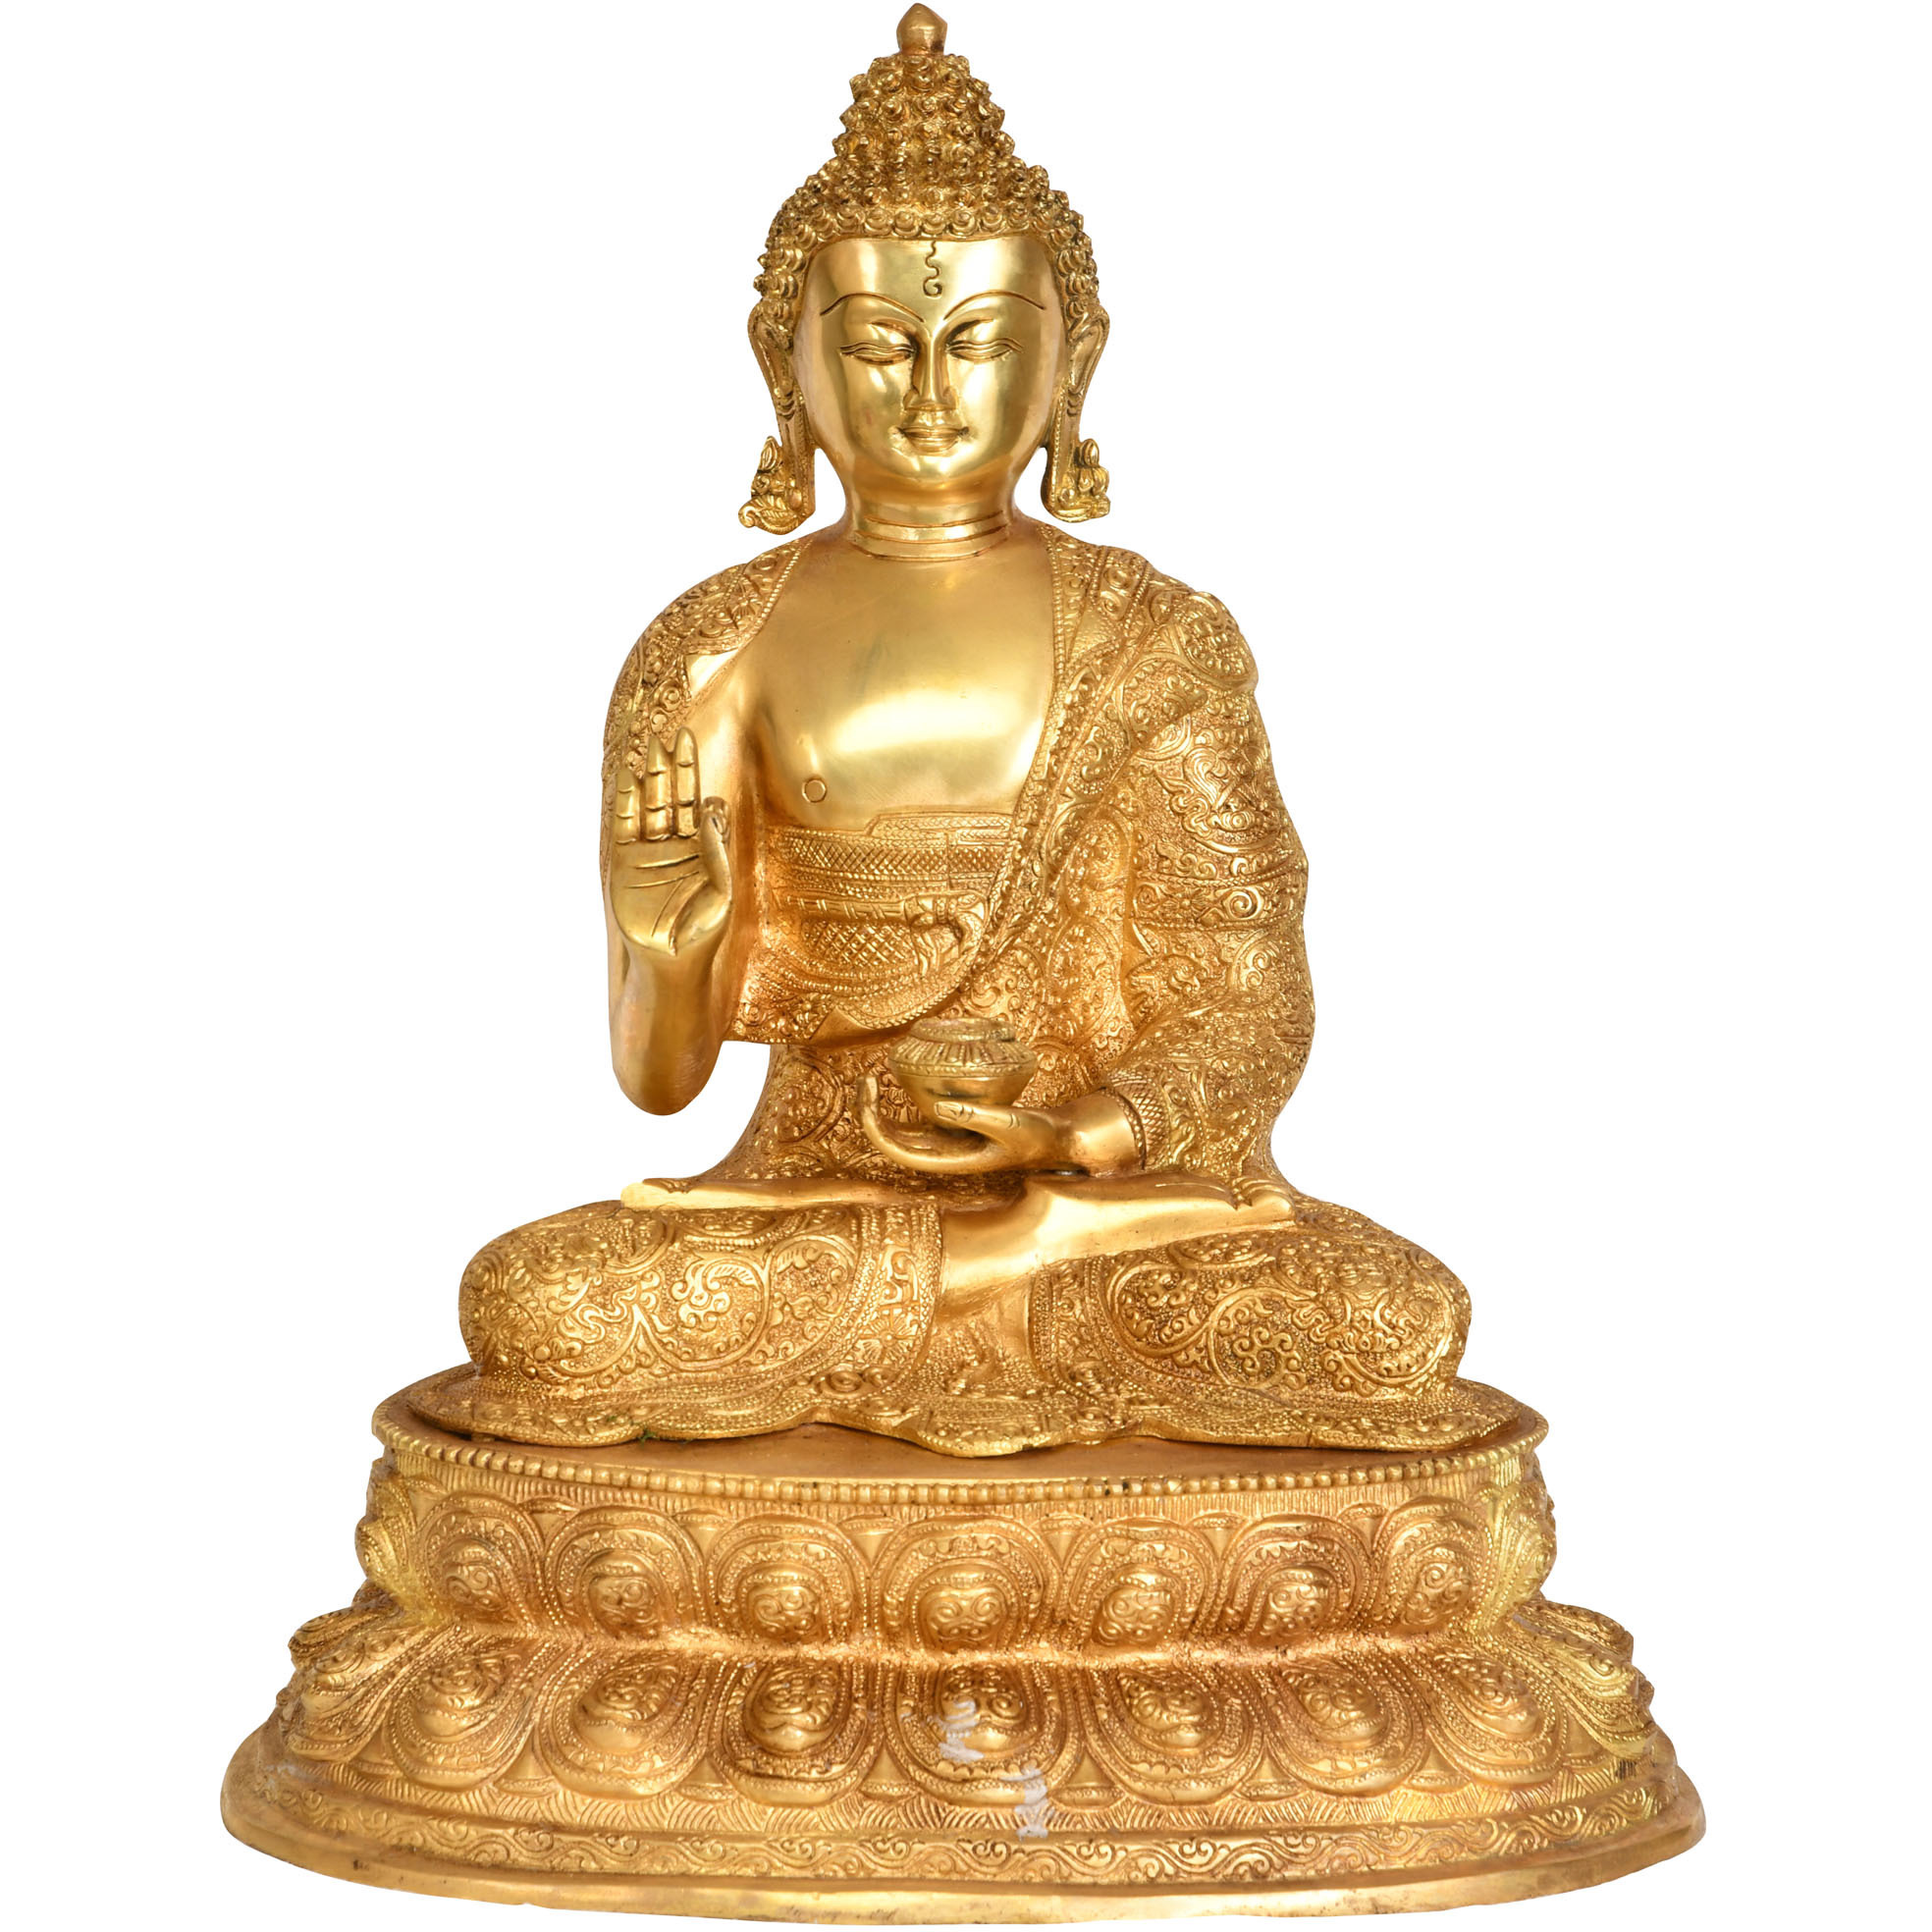 Preaching Buddha Seated On Double Lotus Pedestal with Superfine Carved Robe -Tibetan Buddhist